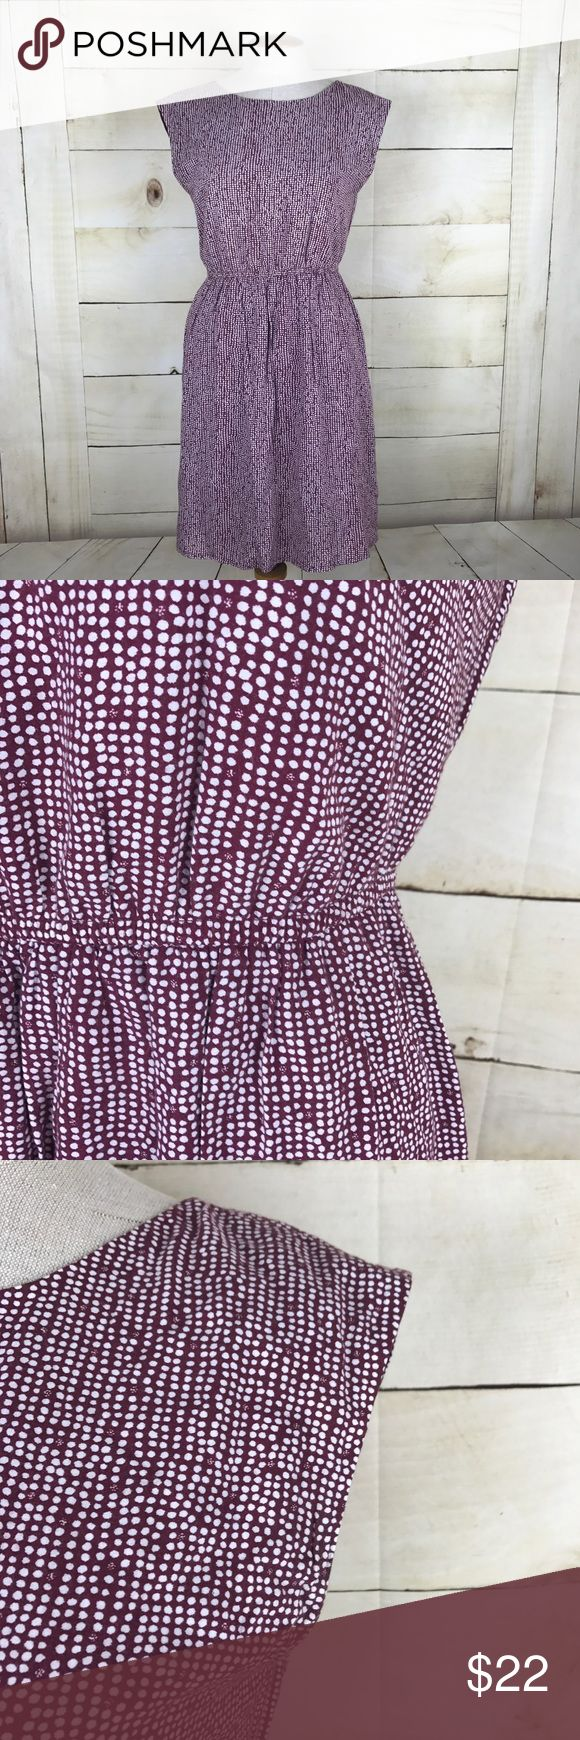 """Zara Basic Purple and White dress Cute Zara Basic dress with purple and white pattern. Great for work or casual weekends. Elastic waist. Size Small. Underarm-underarm 17"""" Length 33"""". 100% Viscose. Lining 100% Polyester. Gently used condition. No trades or modeling. Zara Dresses"""